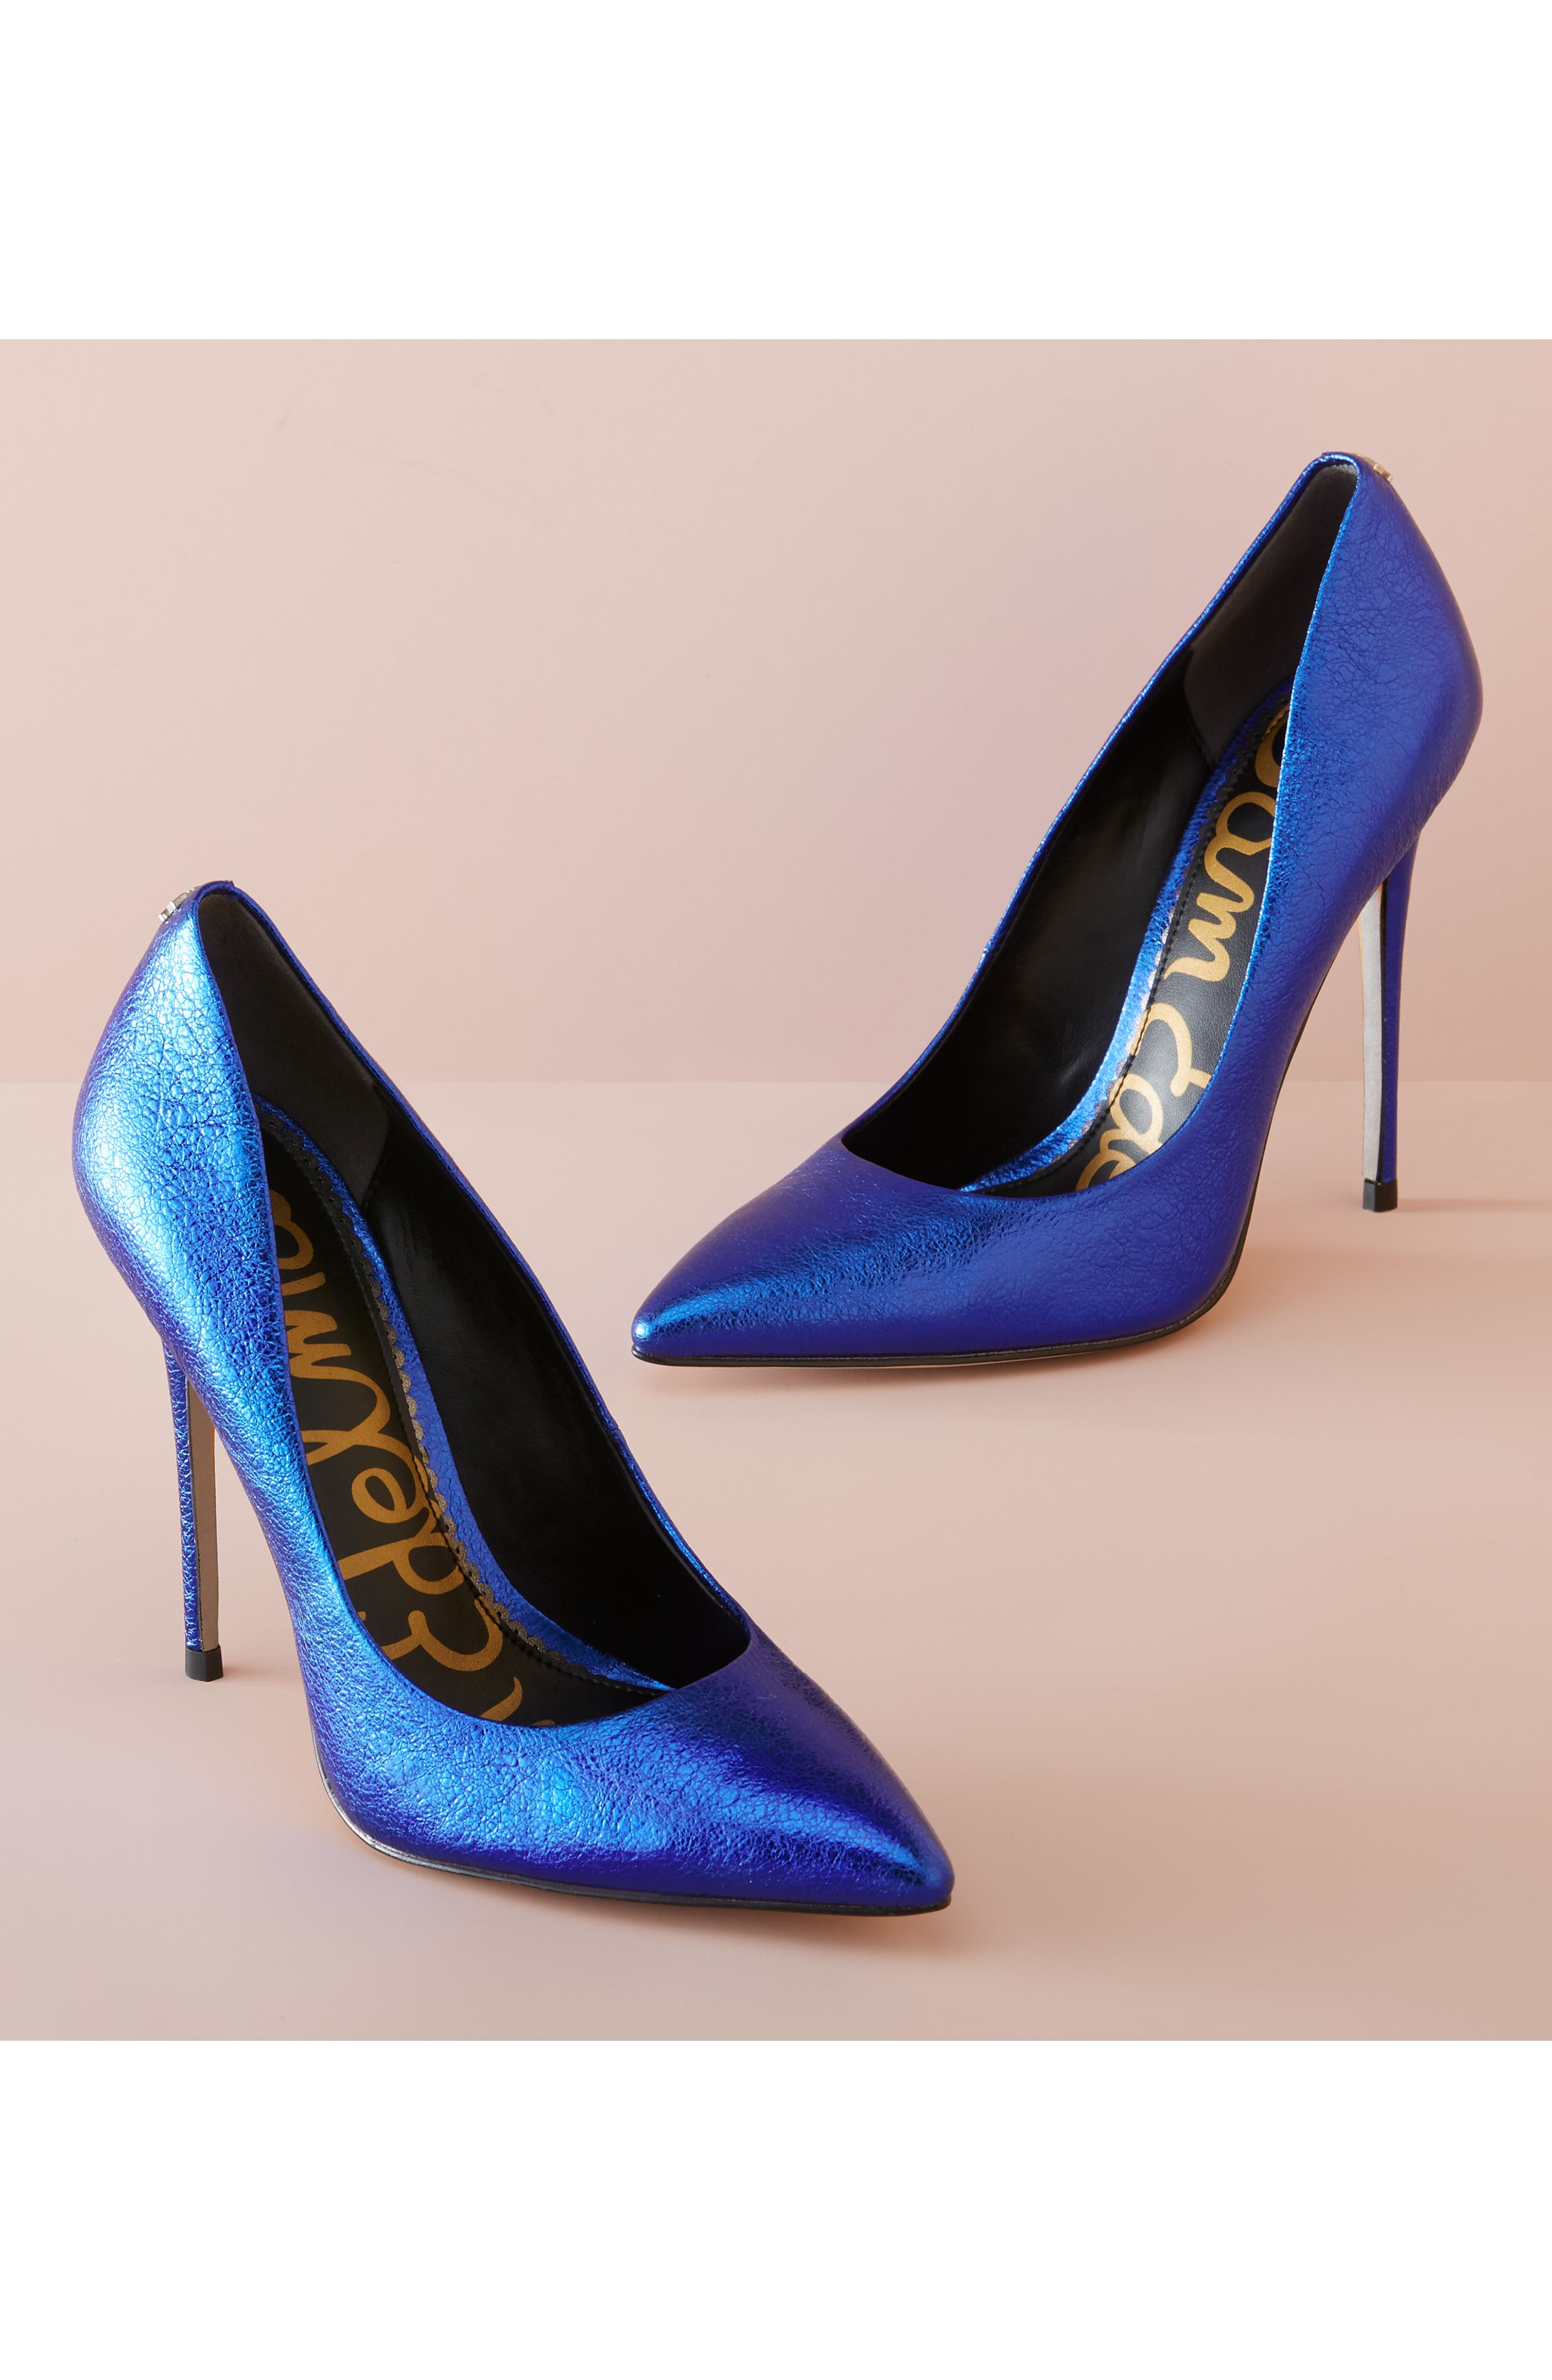 Danna Pointy Toe Pump,                             Alternate thumbnail 10, color,                             ROYAL BLUE LEATHER